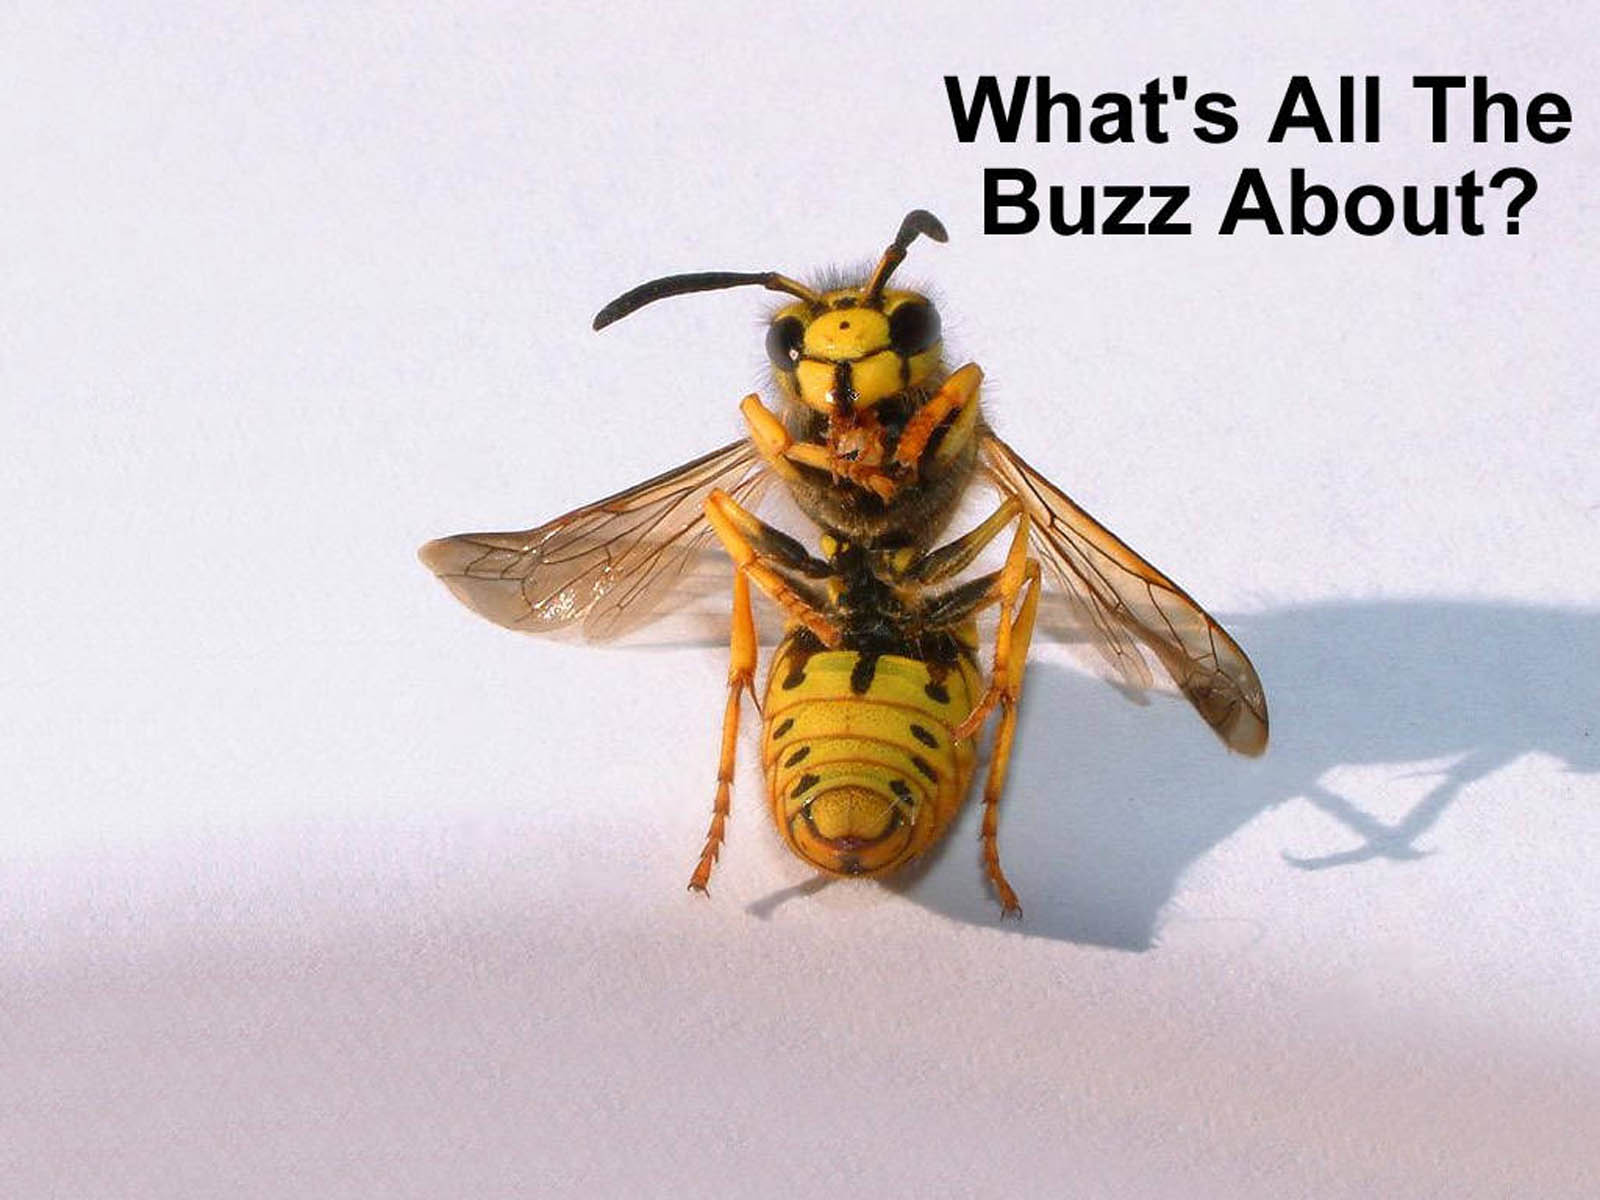 Desktop Wallpaper Insects Funny Backgrounds Humor Wallpapers Download 1600x1200